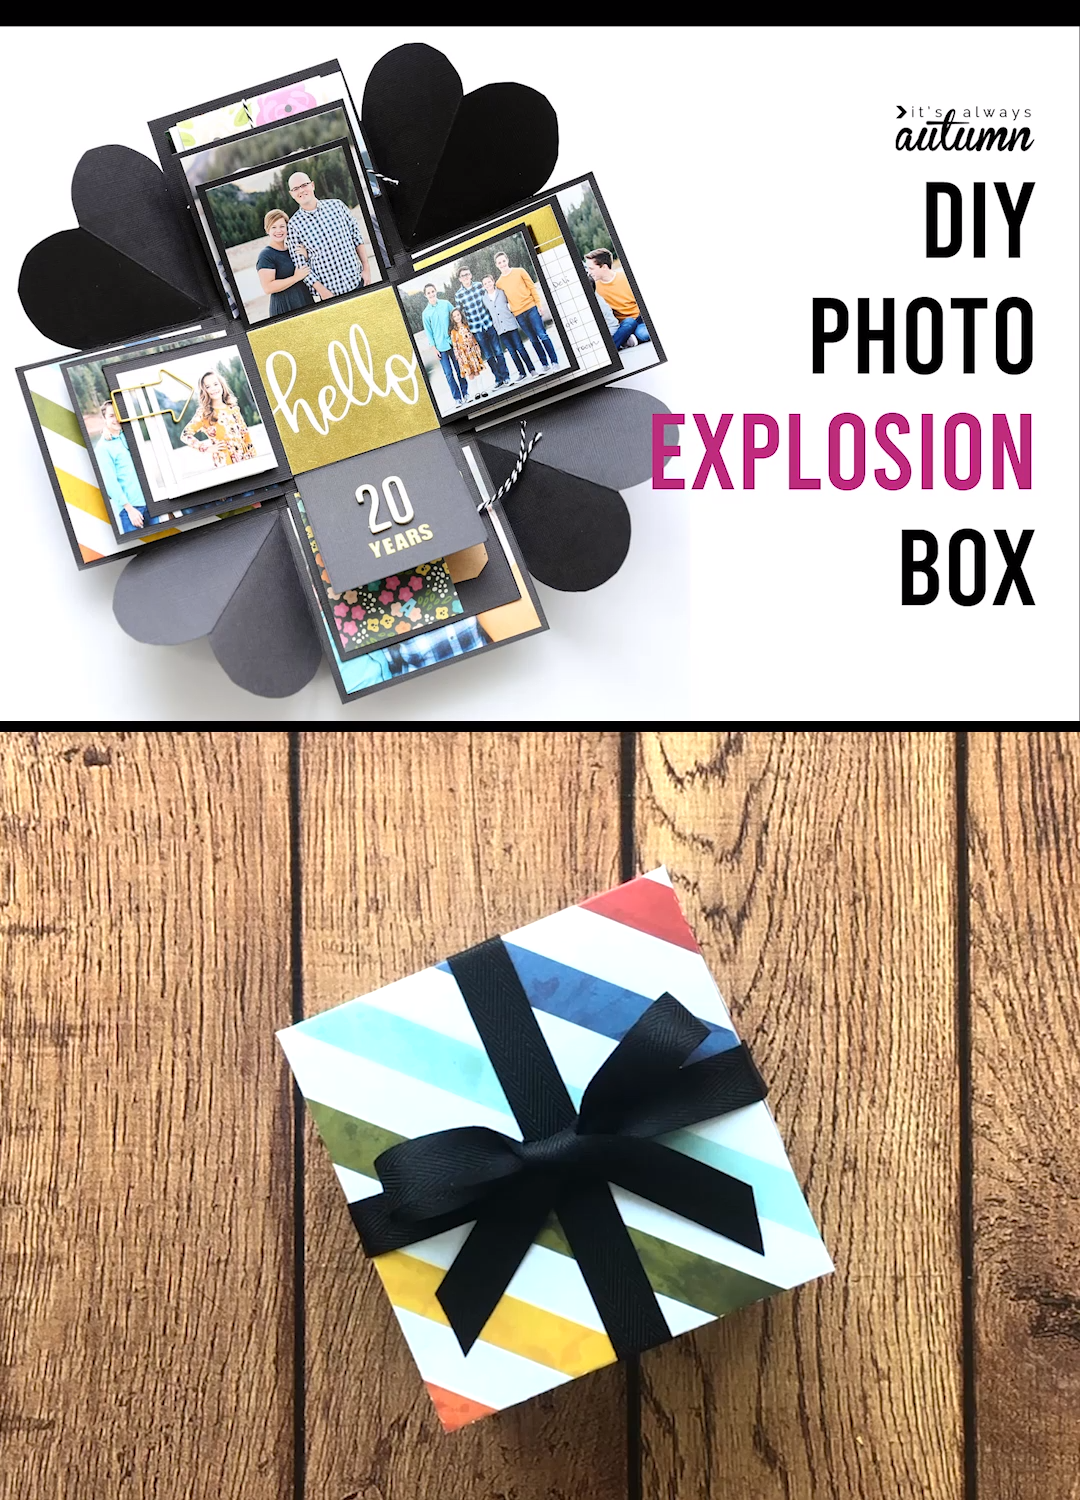 An explosion box is a cool DIY gift that's cheap and easy to make! Great idea for Mother's Day, Father's Day, an anniversary, a boyfriend gift, etc.